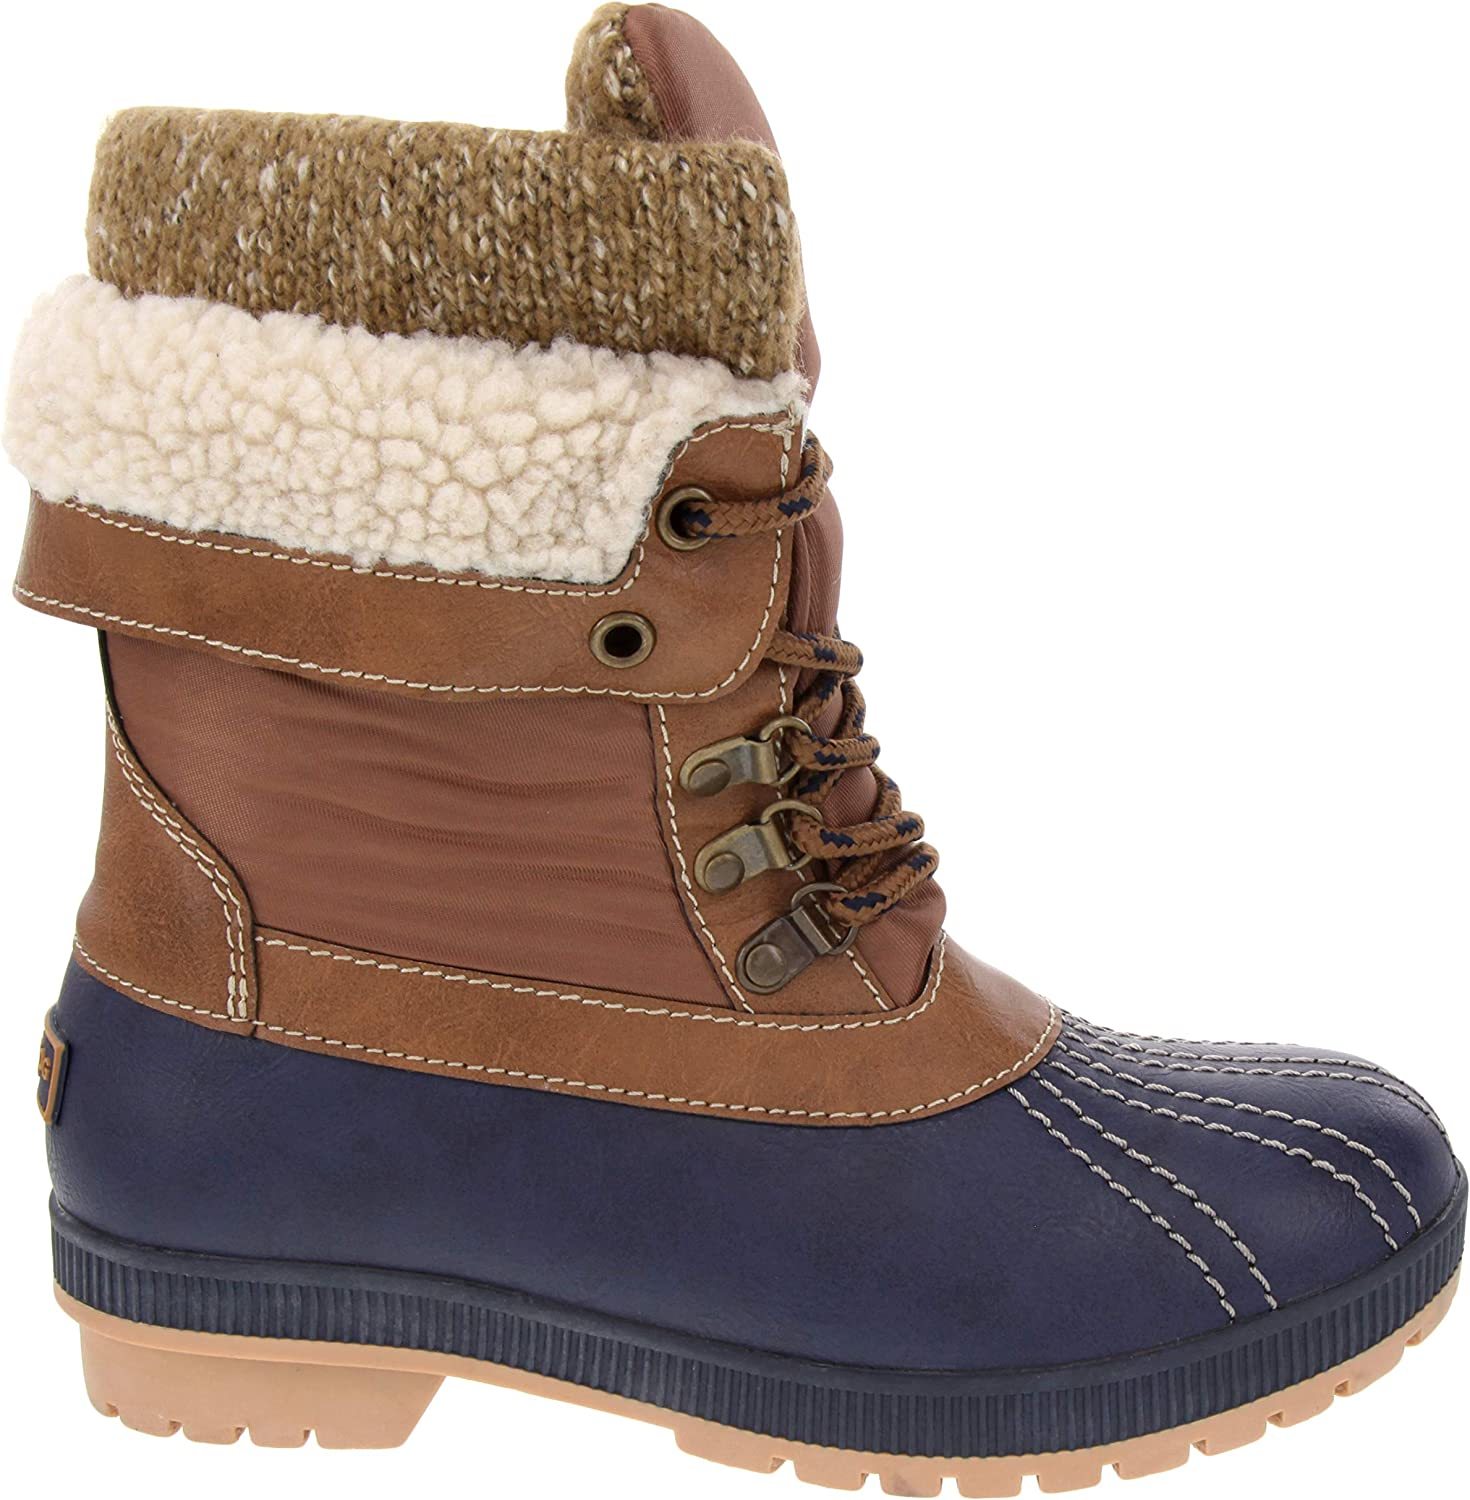 | LONDON FOG Womens Mitten Cold Weather Duck Boot for Snow | Snow Boots